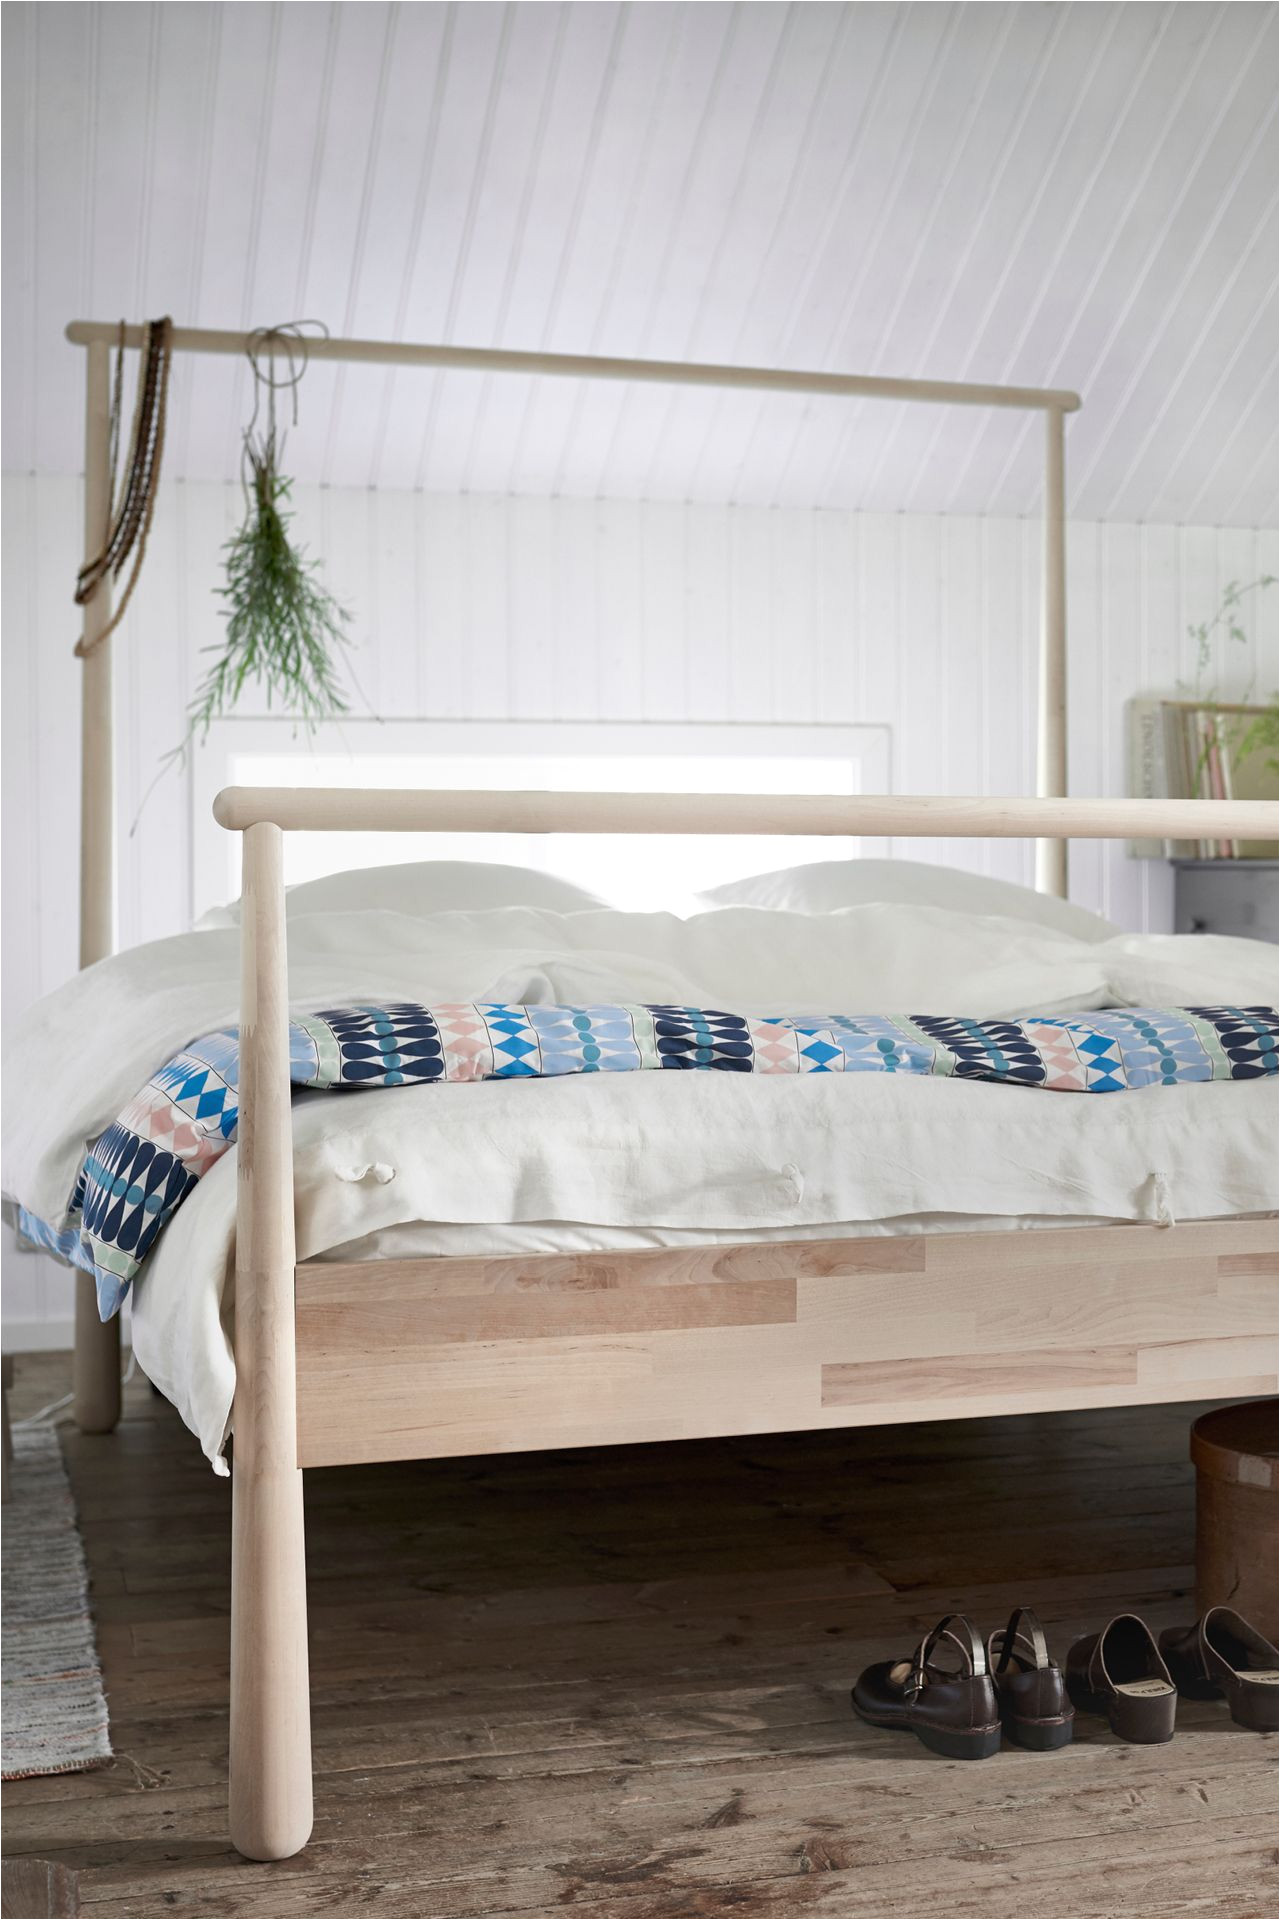 when is a bed more than a bed when it s a gja ra bed with a solid birch frame that can be a clothes hangar room divider or anything you can think of